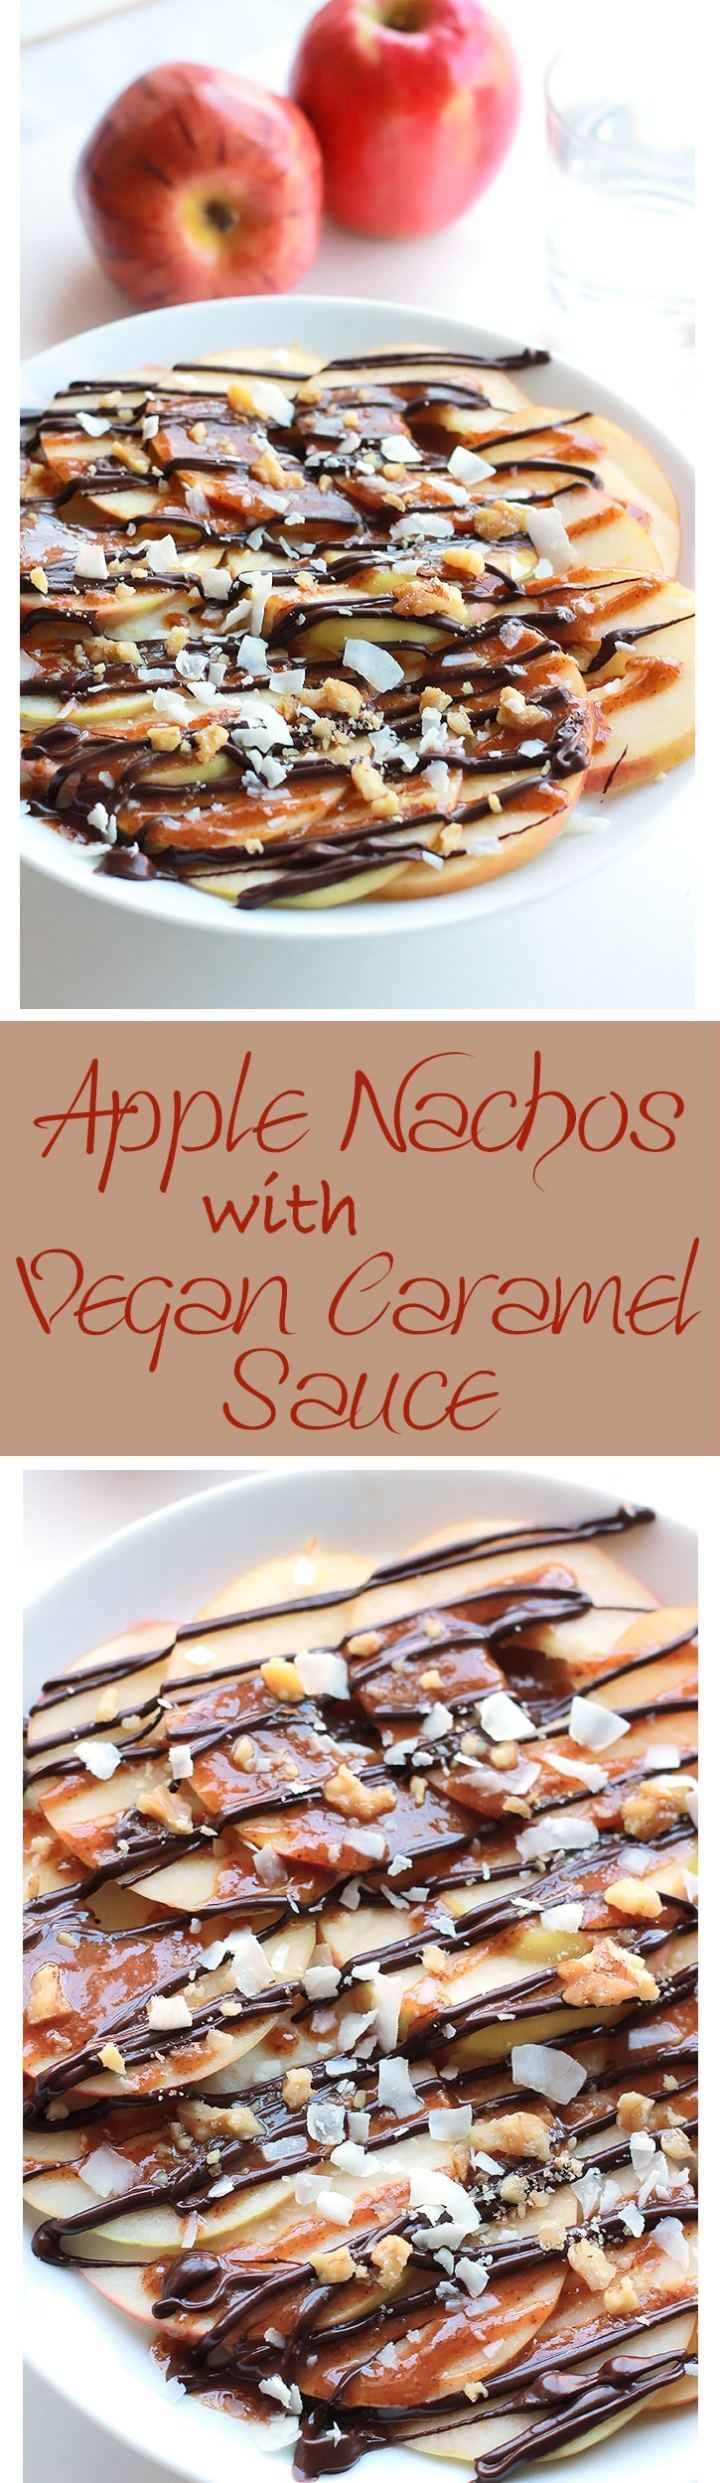 Apple Nachos with Vegan Caramel Sauce - Layers of sweet crisp apple slices garnished with smooth vegan caramel, dark chocolate, walnuts and coconut. It's like eating a delicious candy apple.